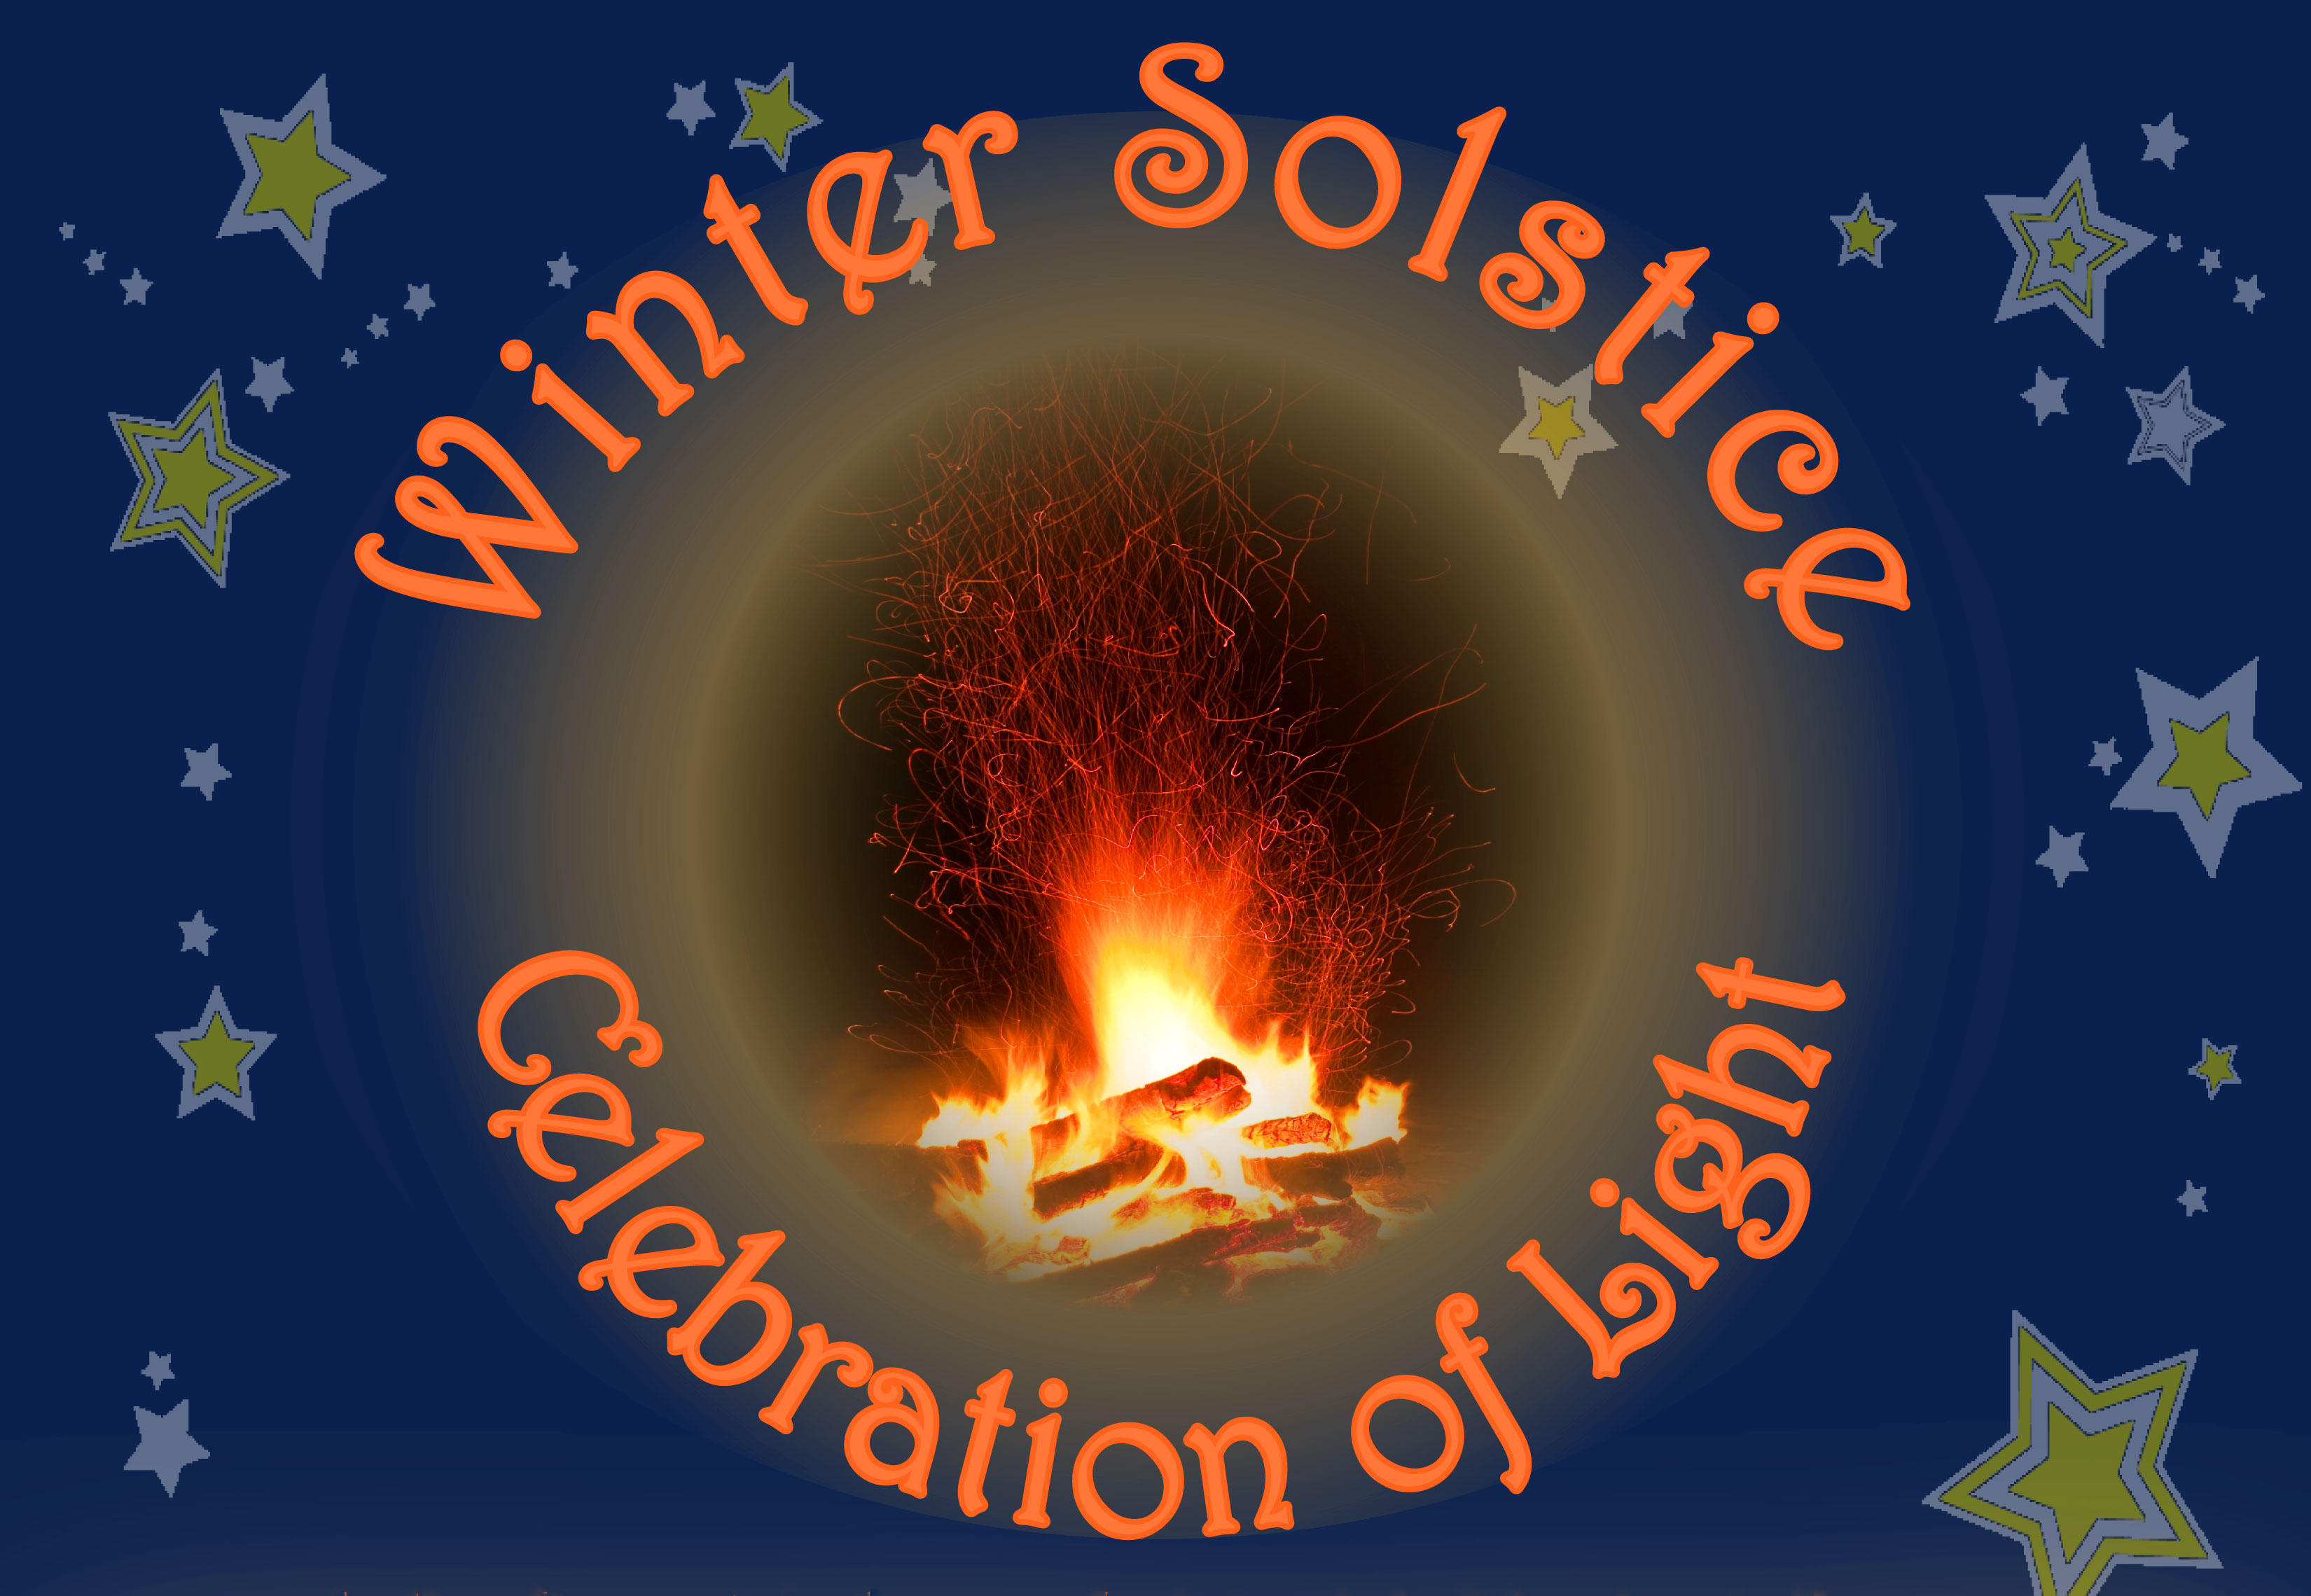 Welcome to pathfinder camille albrecht page 2 2015 winter solstice m4hsunfo